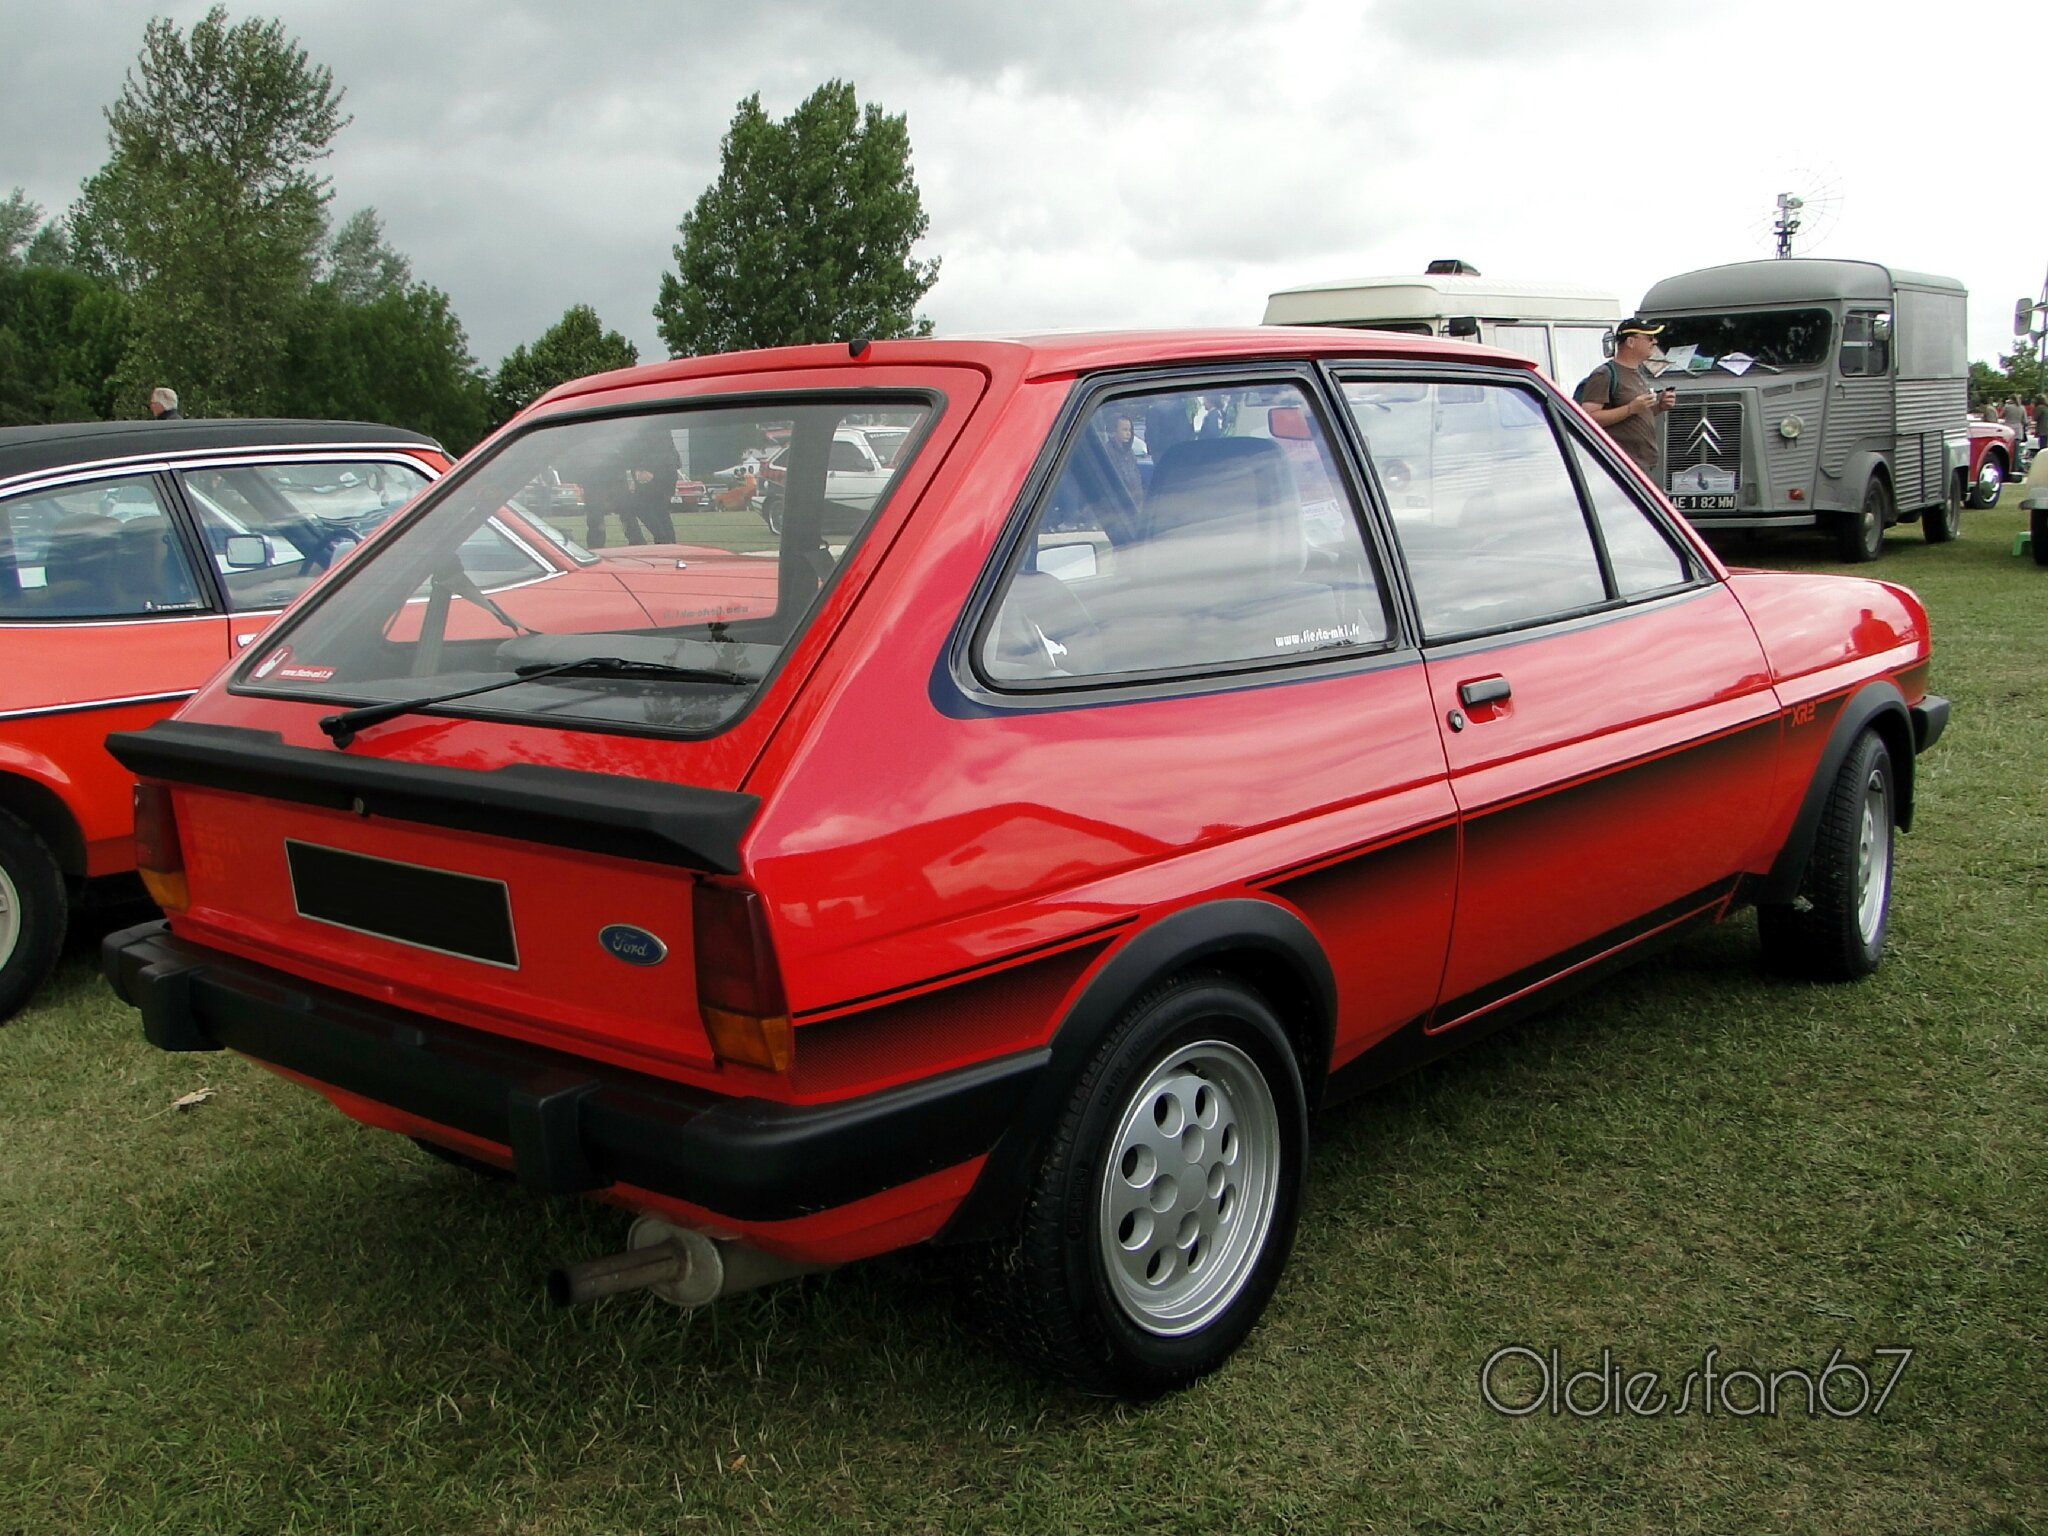 ford fiesta xr2 1982 oldiesfan67 mon blog auto. Black Bedroom Furniture Sets. Home Design Ideas